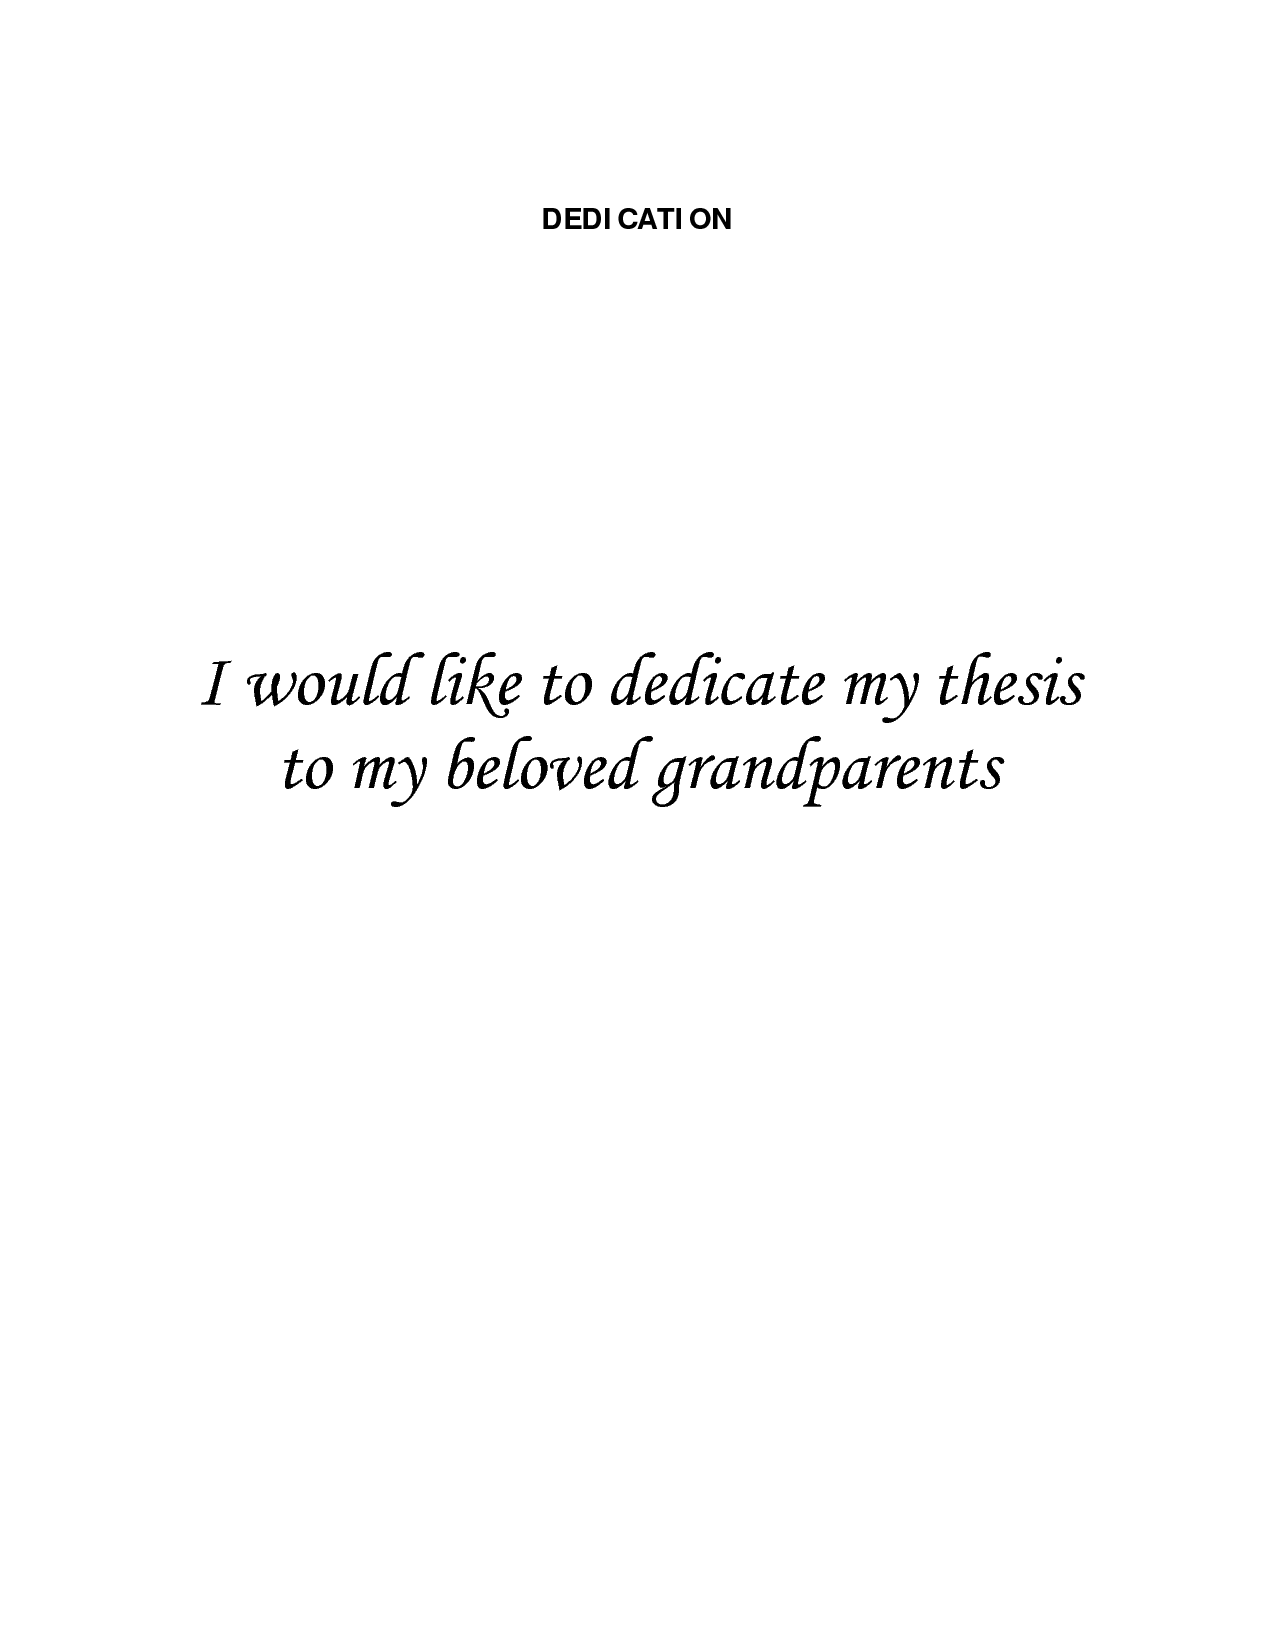 Phd thesis dedication page